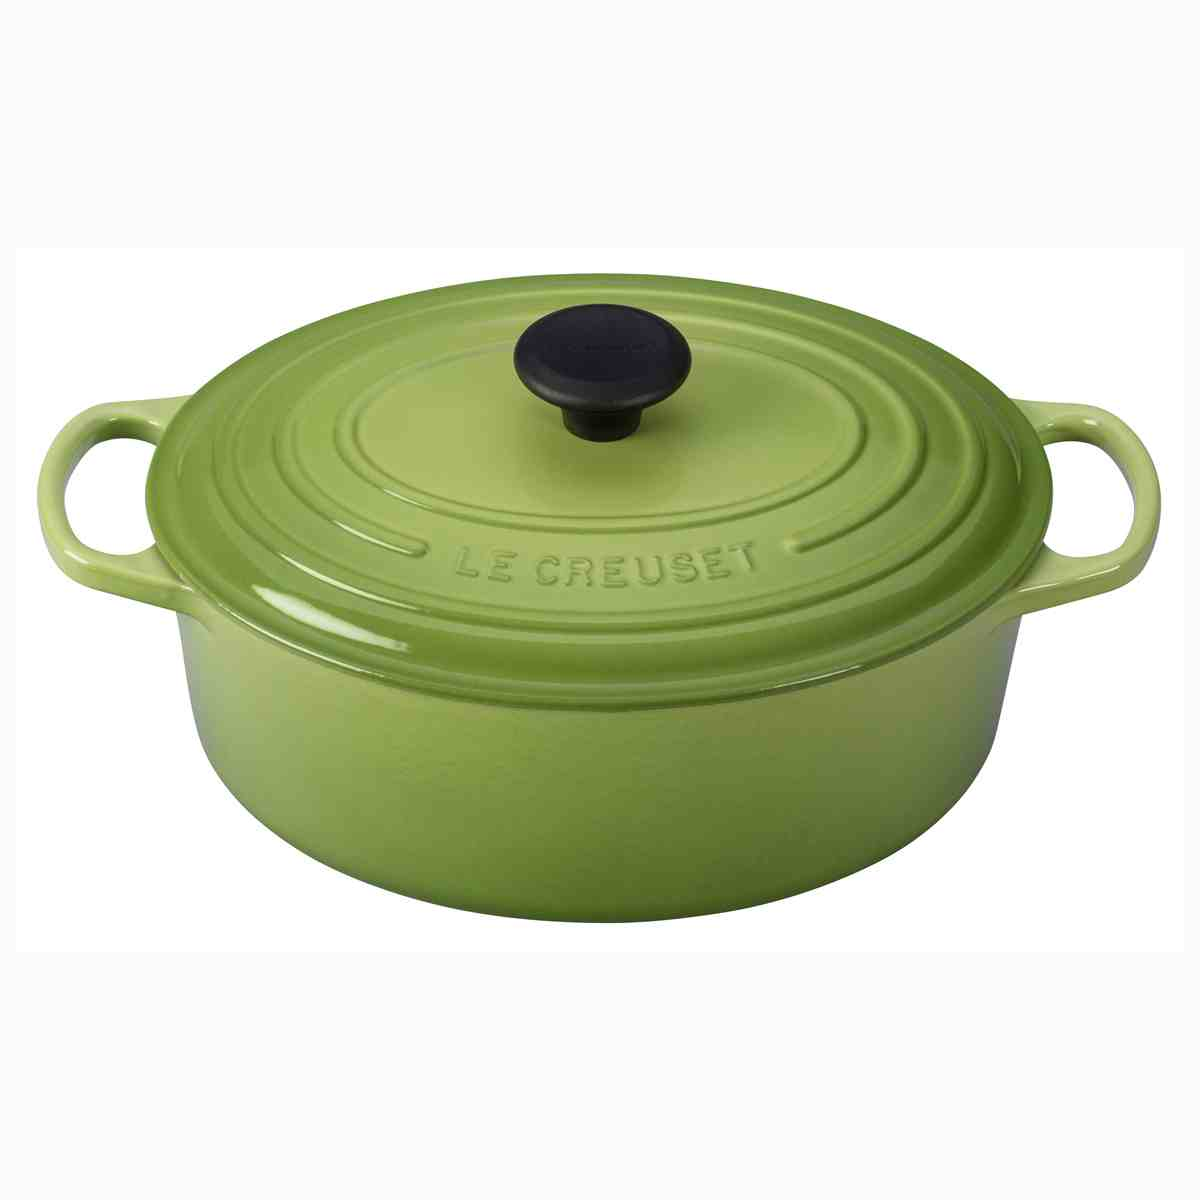 Le Creuset Oval French Oven 4.7L Palm